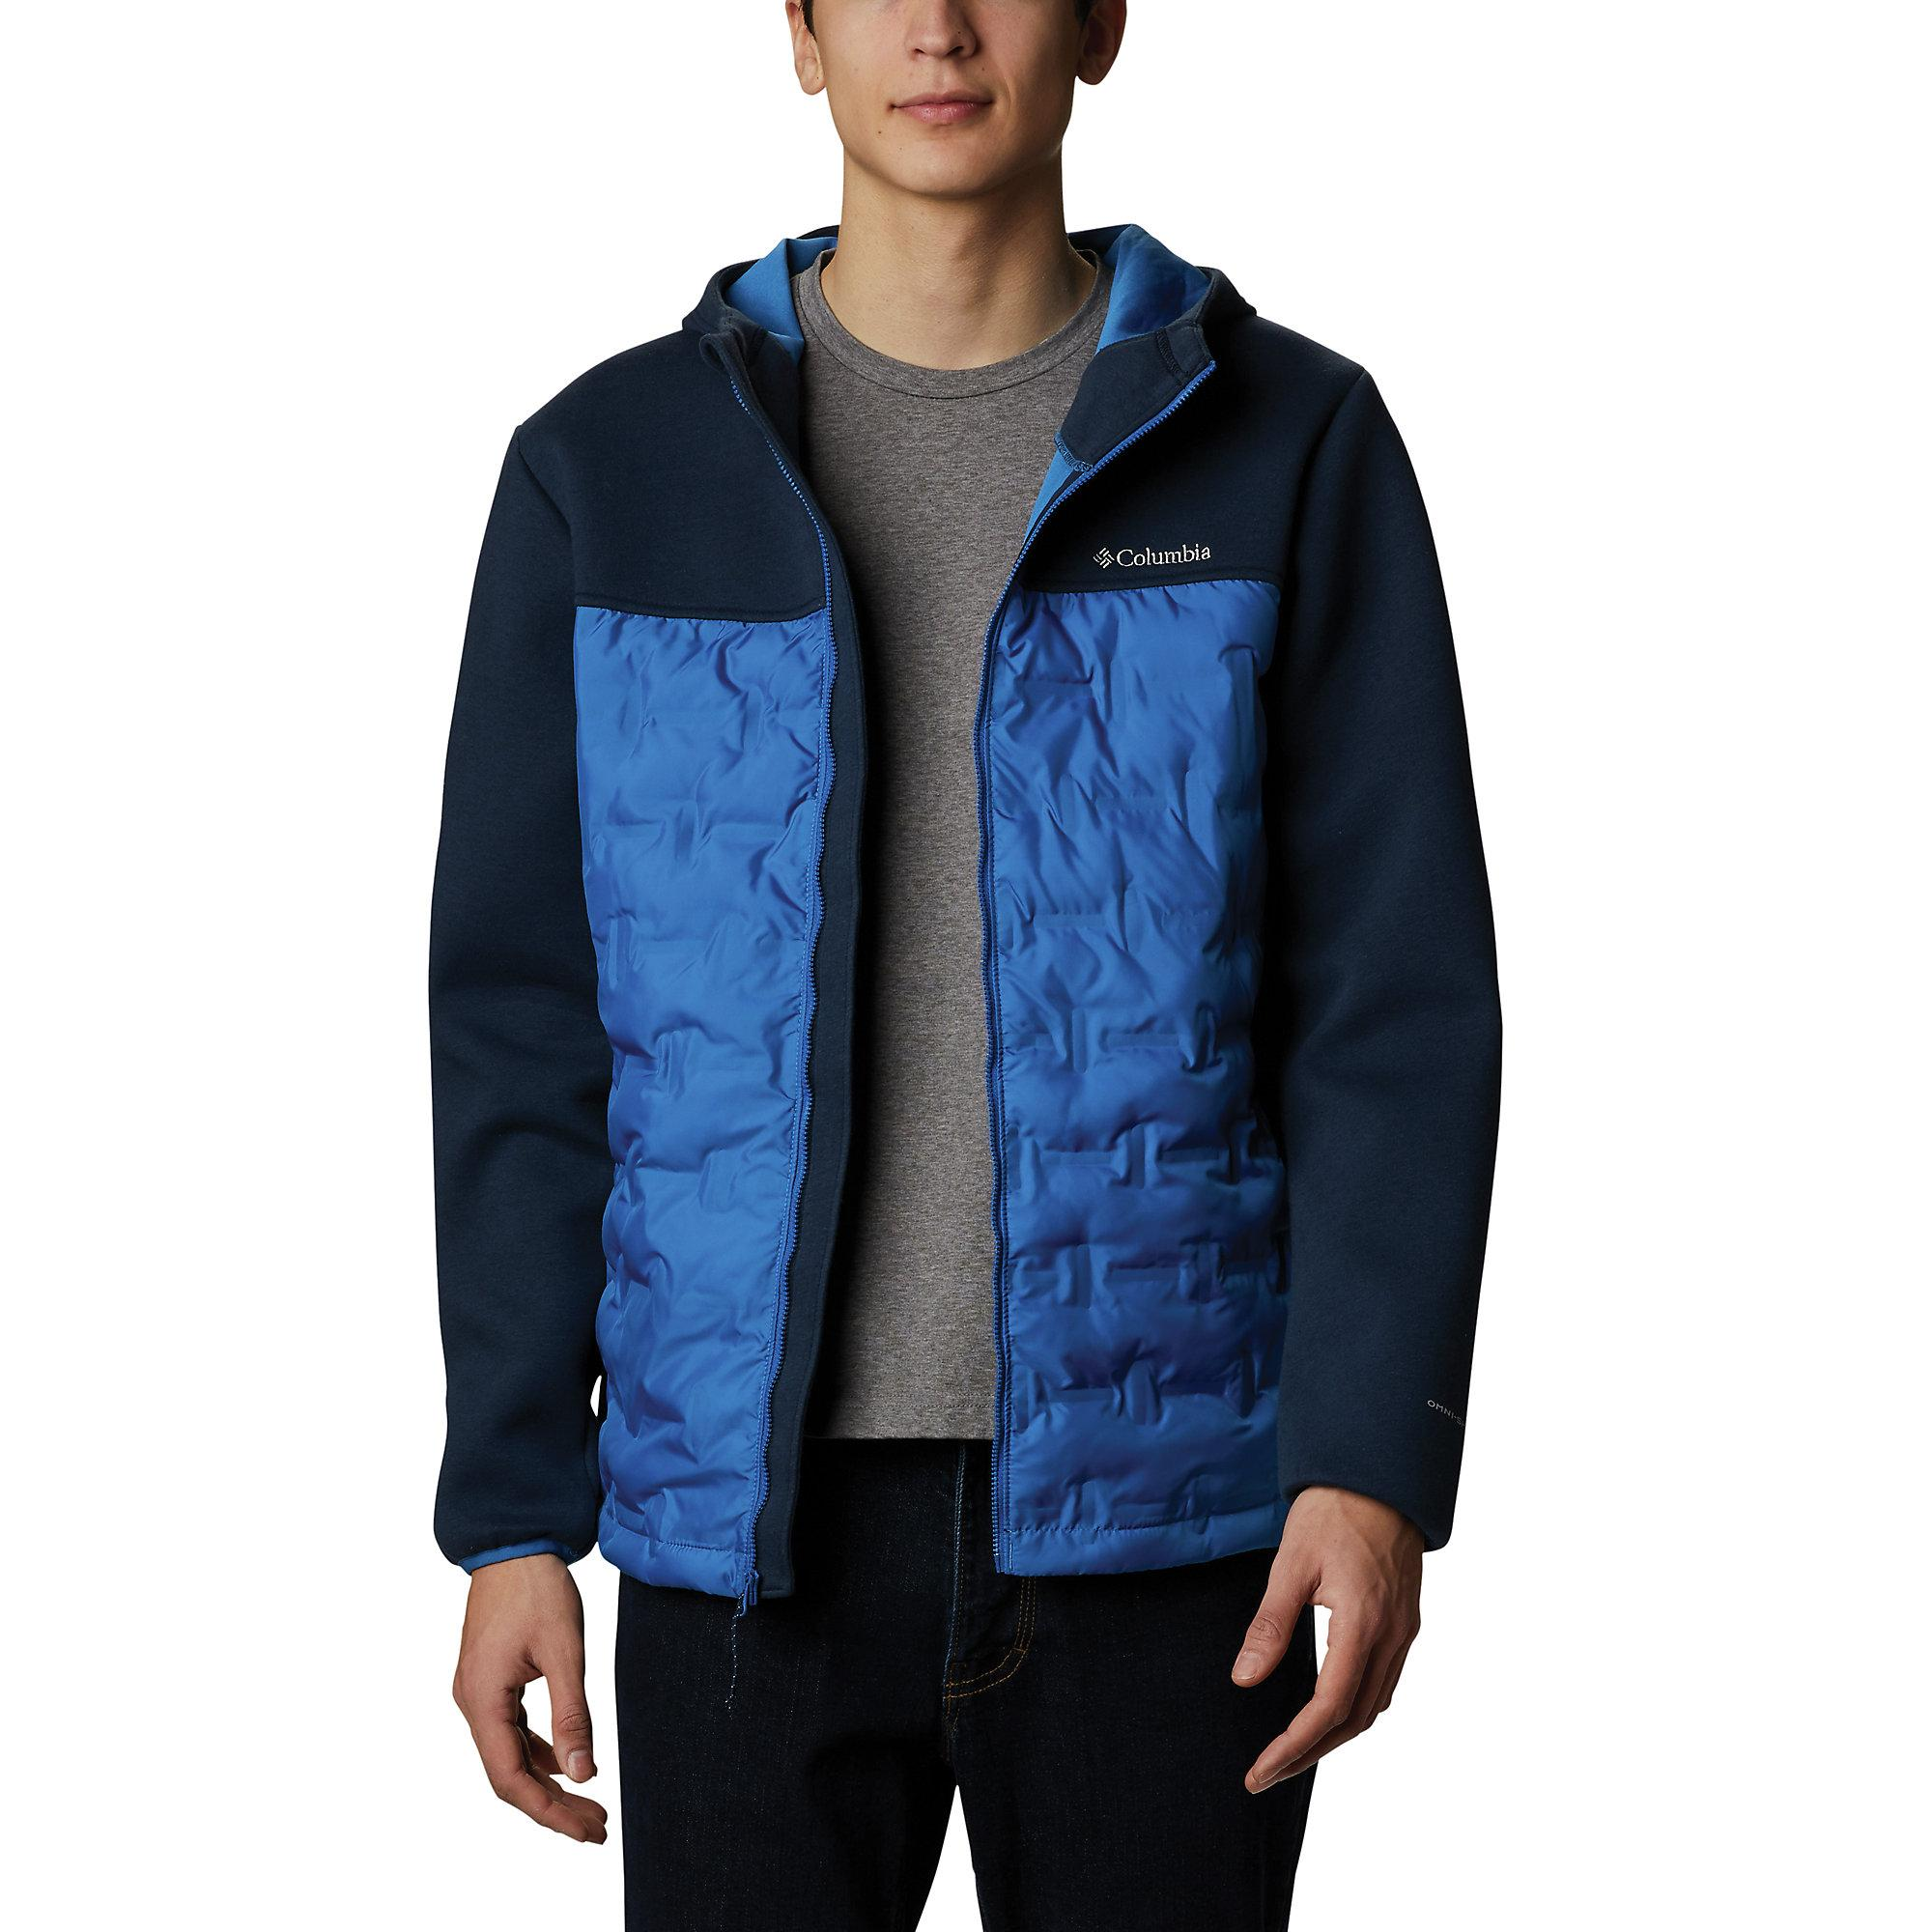 Columbia Synthetic Tech Trail Hybrid Hoodie in Bright ...